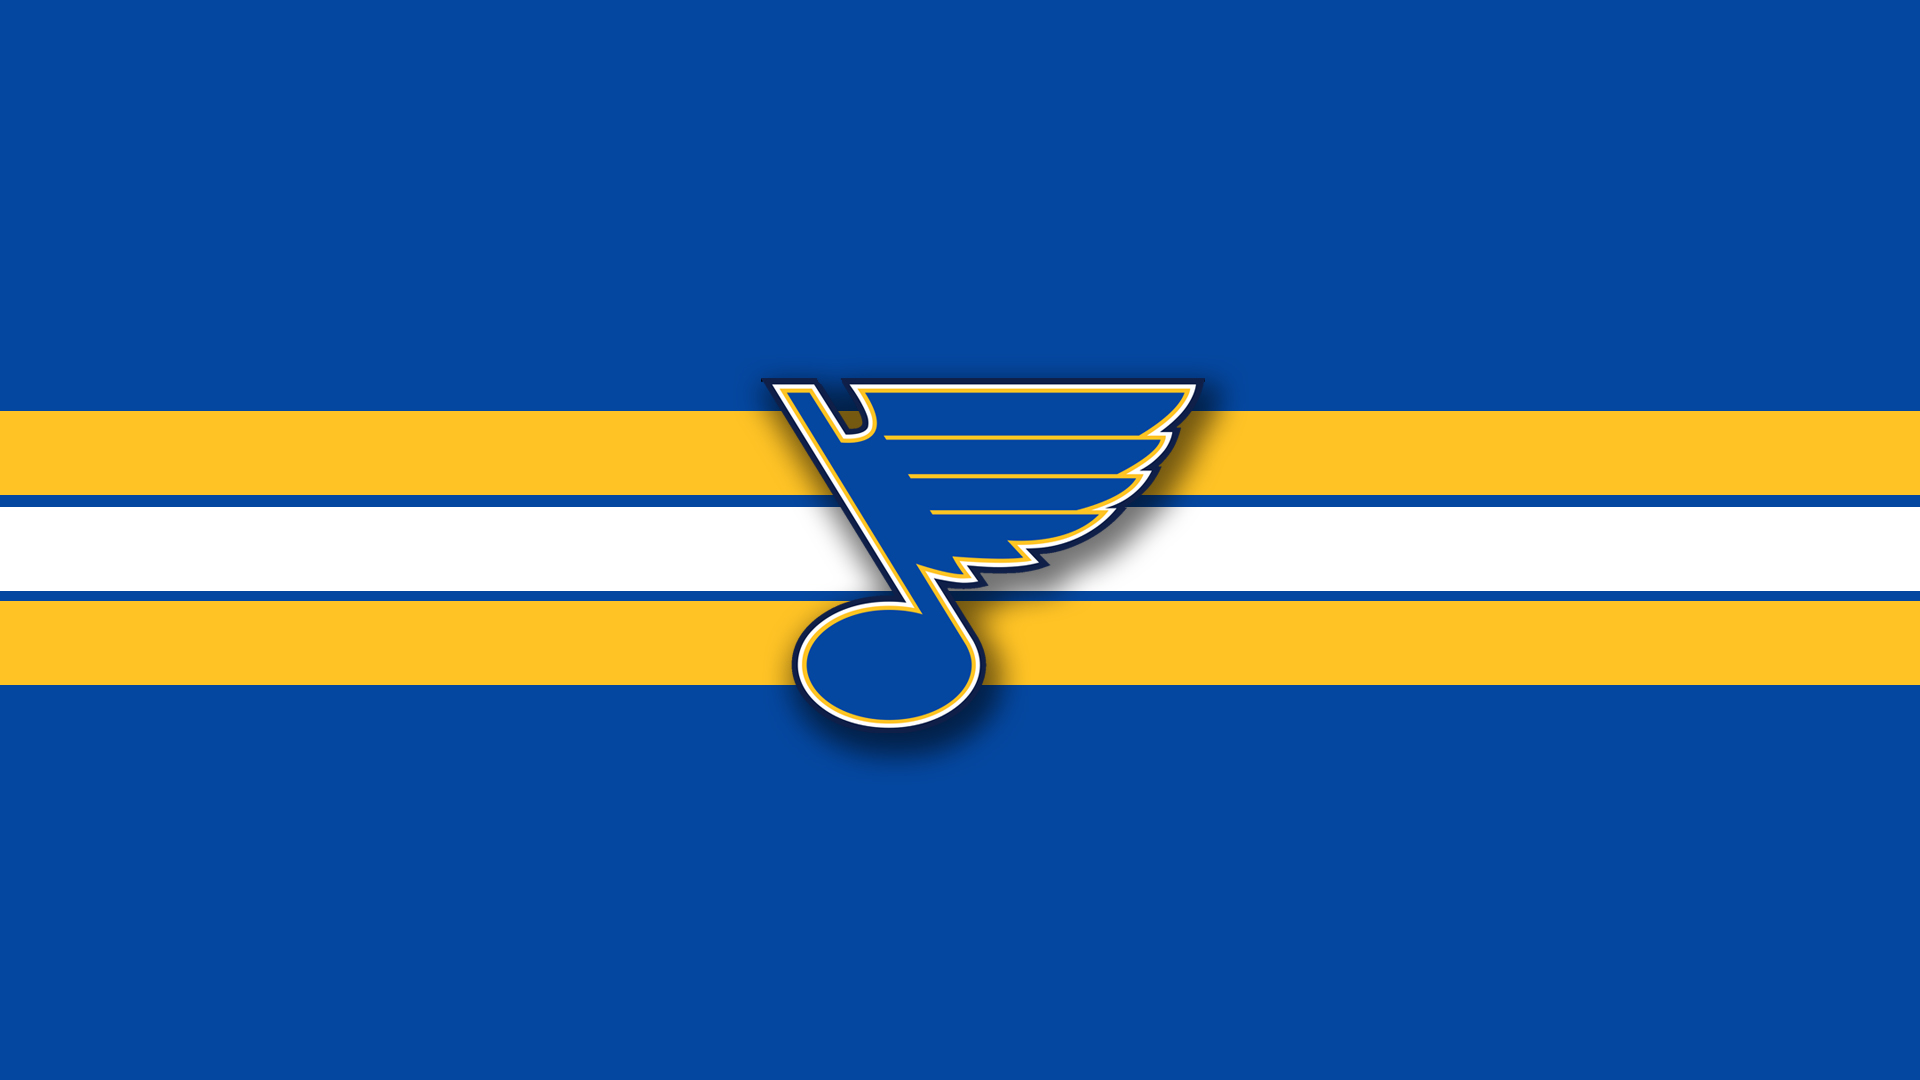 Special StLouis Blues Wallpaper Full HD Pictures 1920x1080